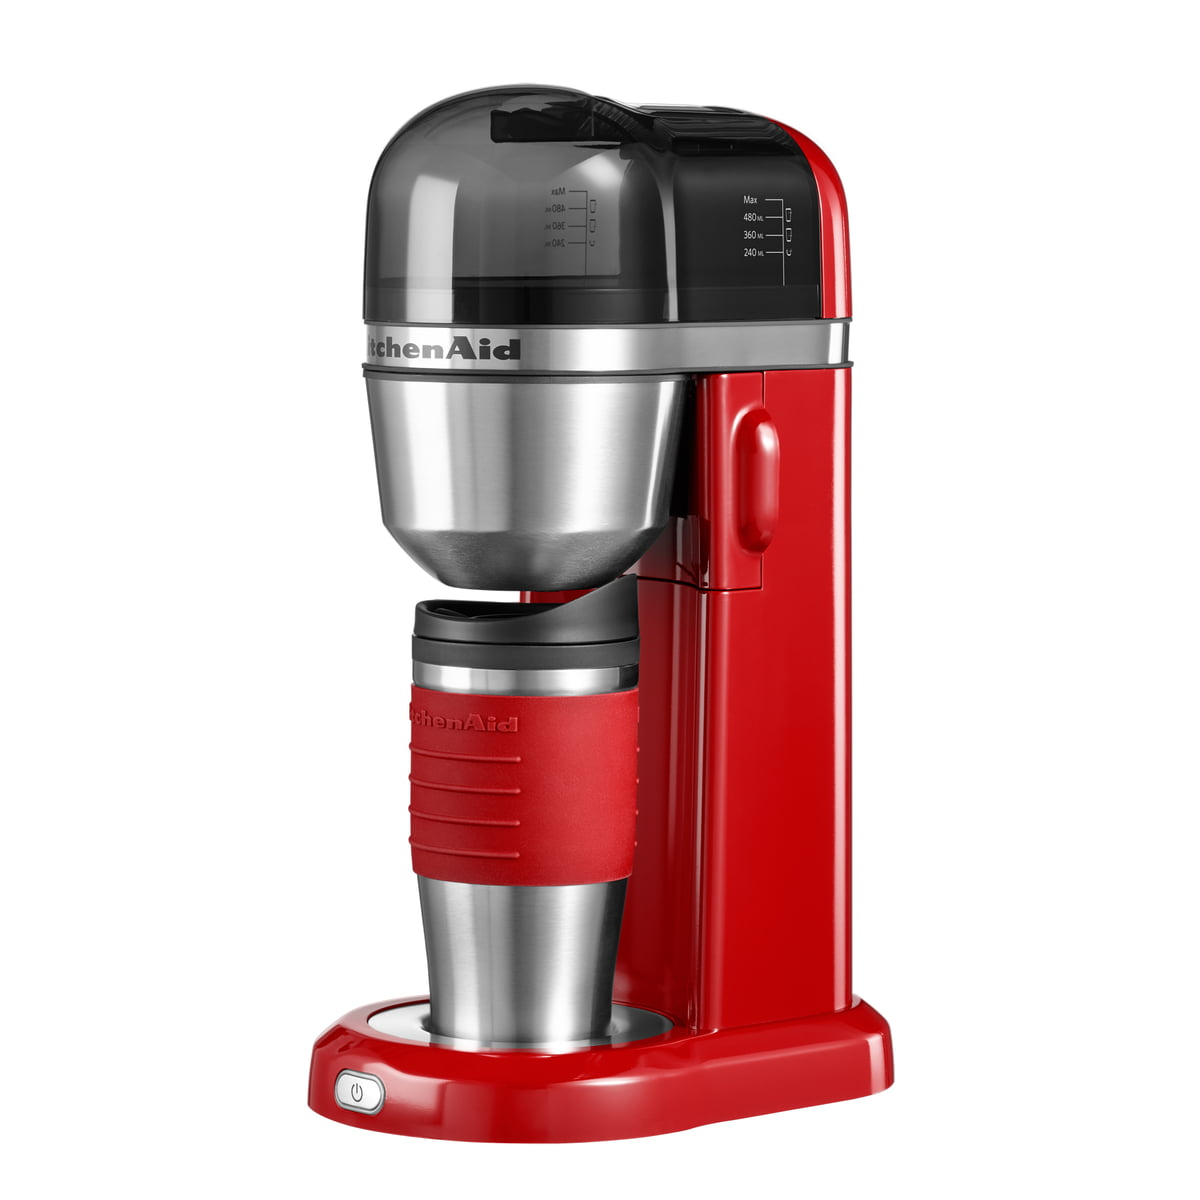 the to go coffee machine from kitchenaid. Black Bedroom Furniture Sets. Home Design Ideas